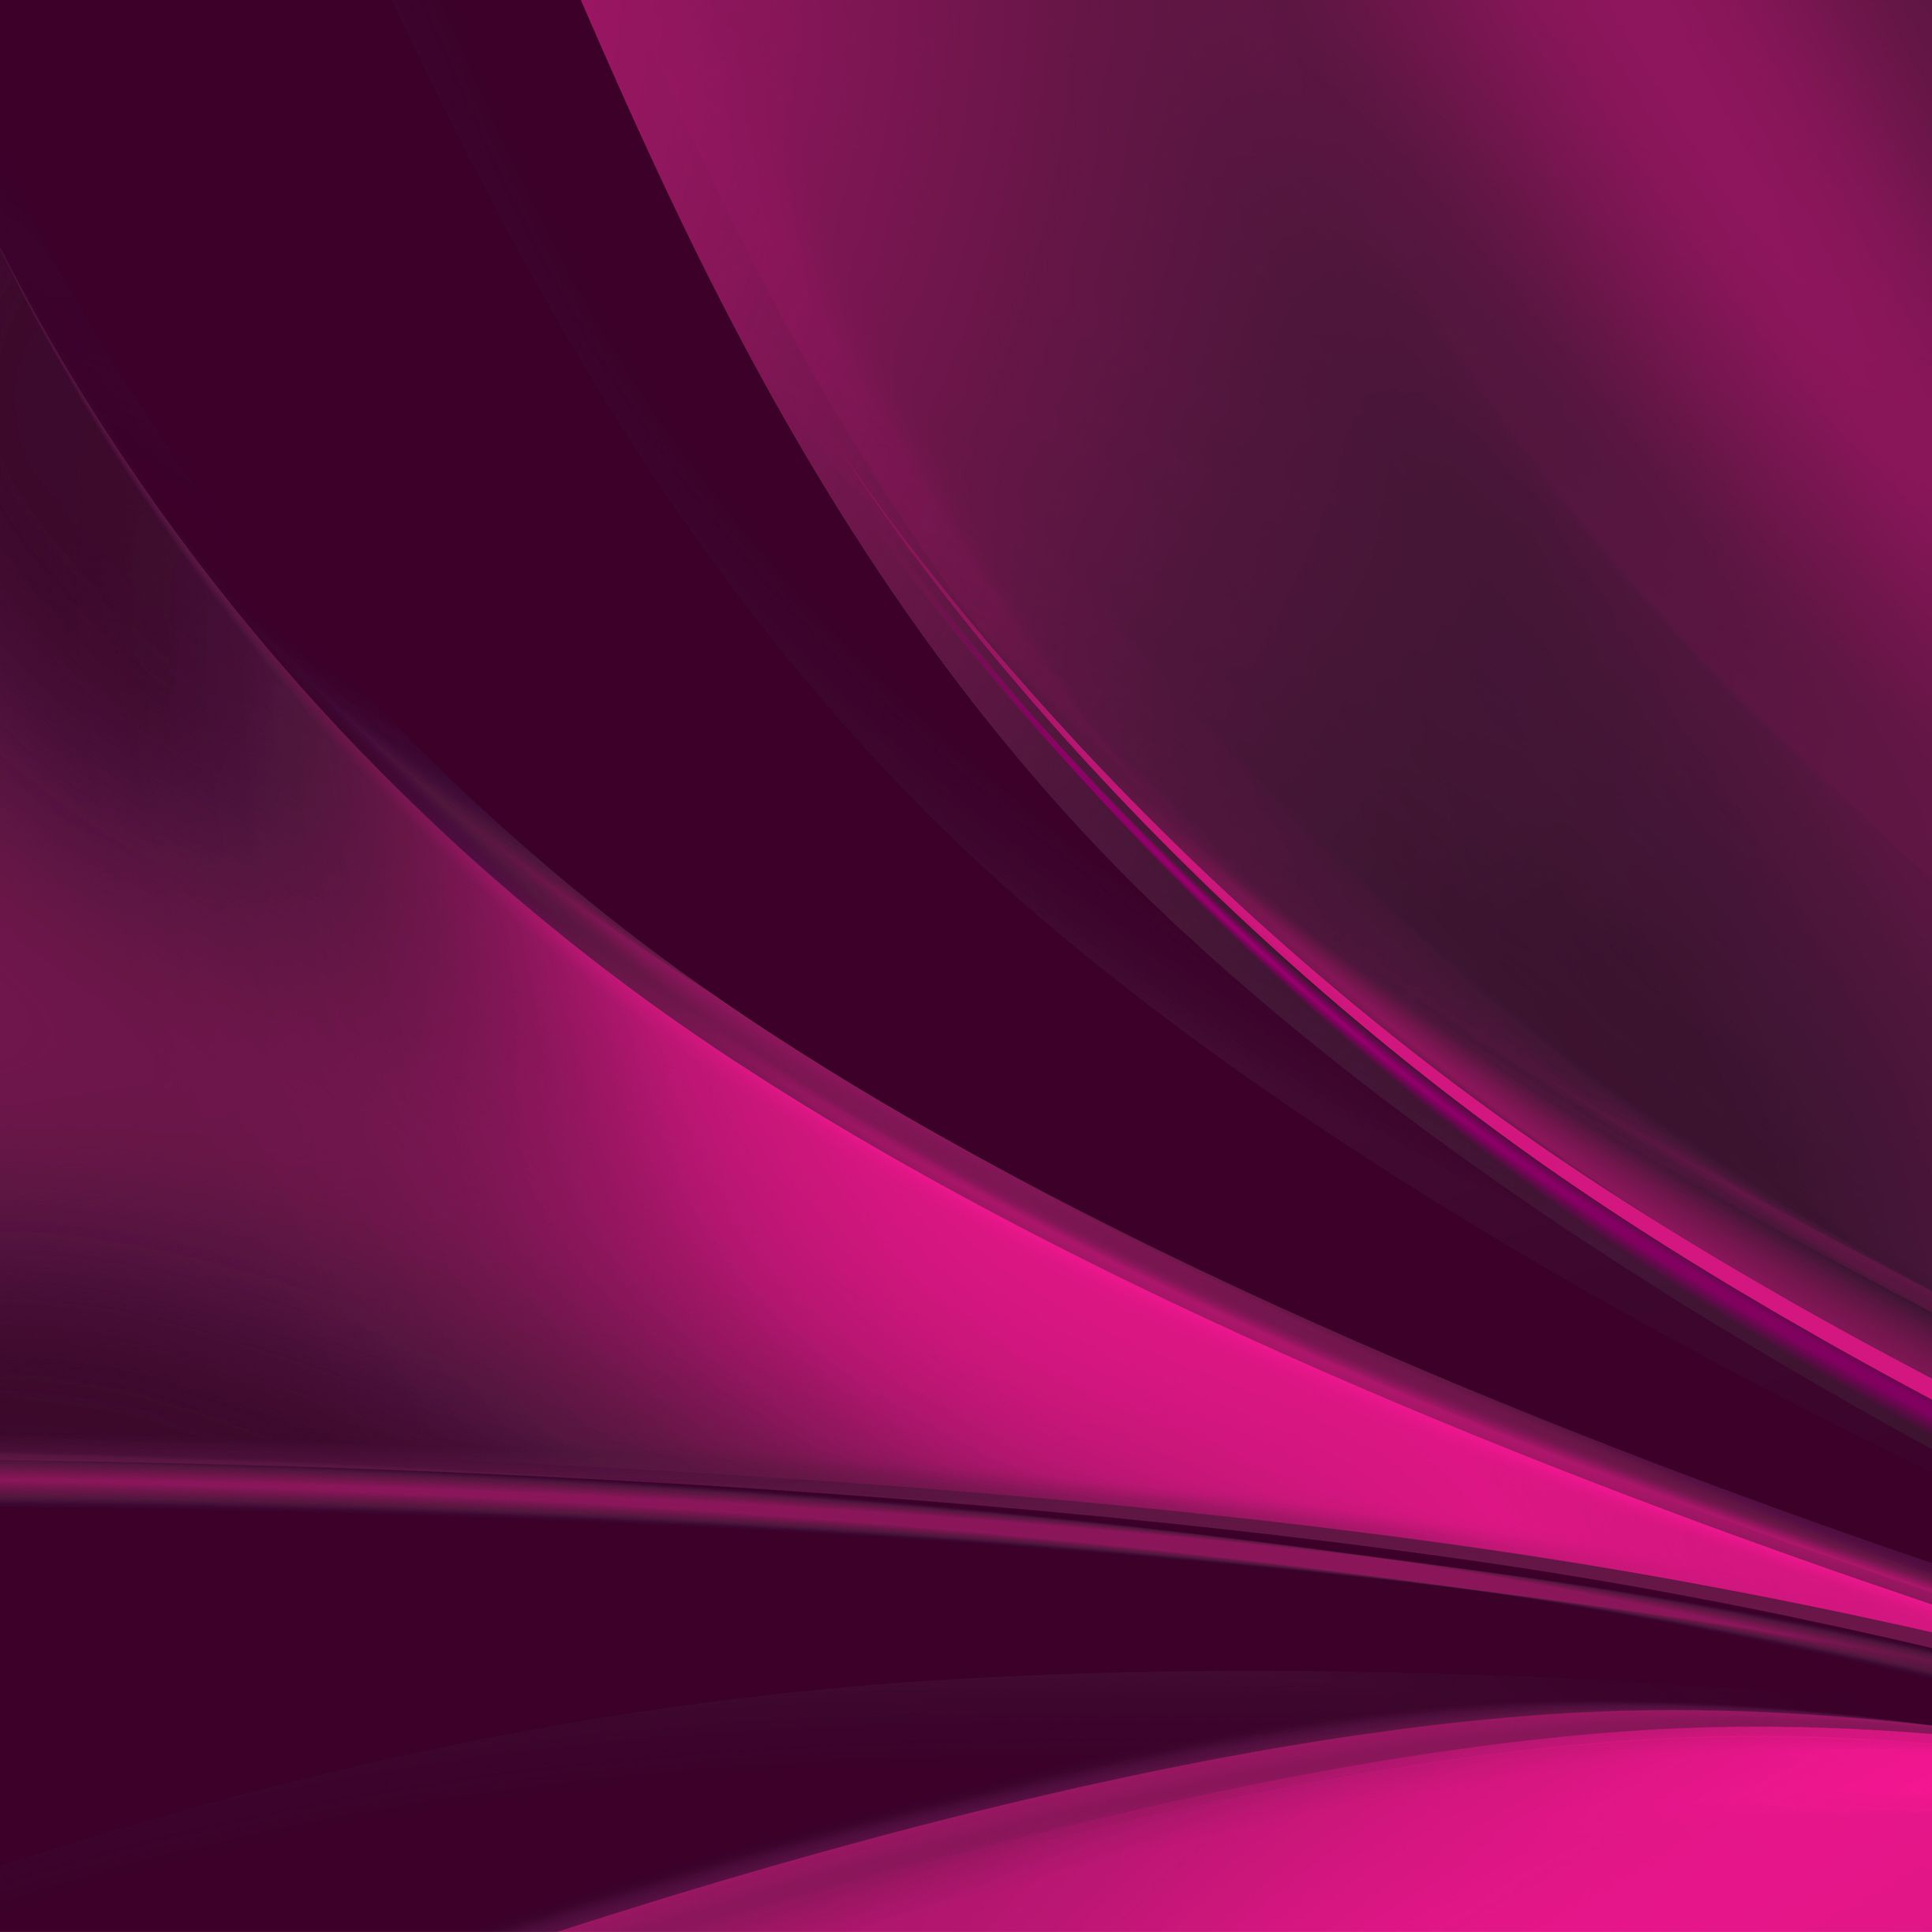 10 iOS 7 Parallax Wallpapers for You, This Time For iPad ...